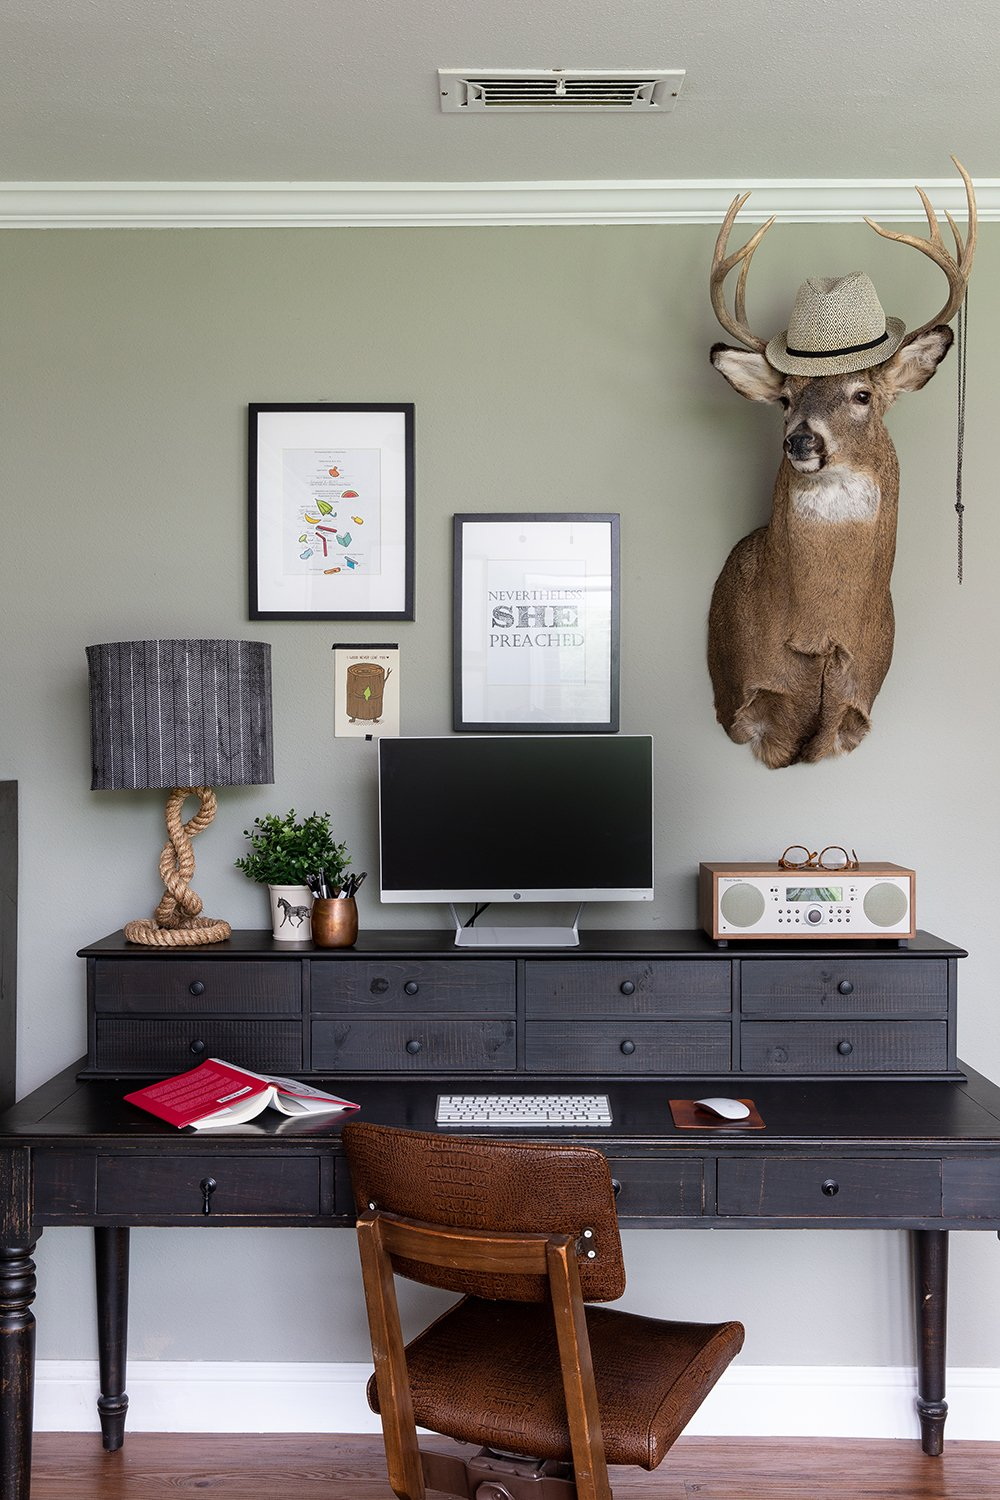 Whoa! Check out the before and after of this home office space.